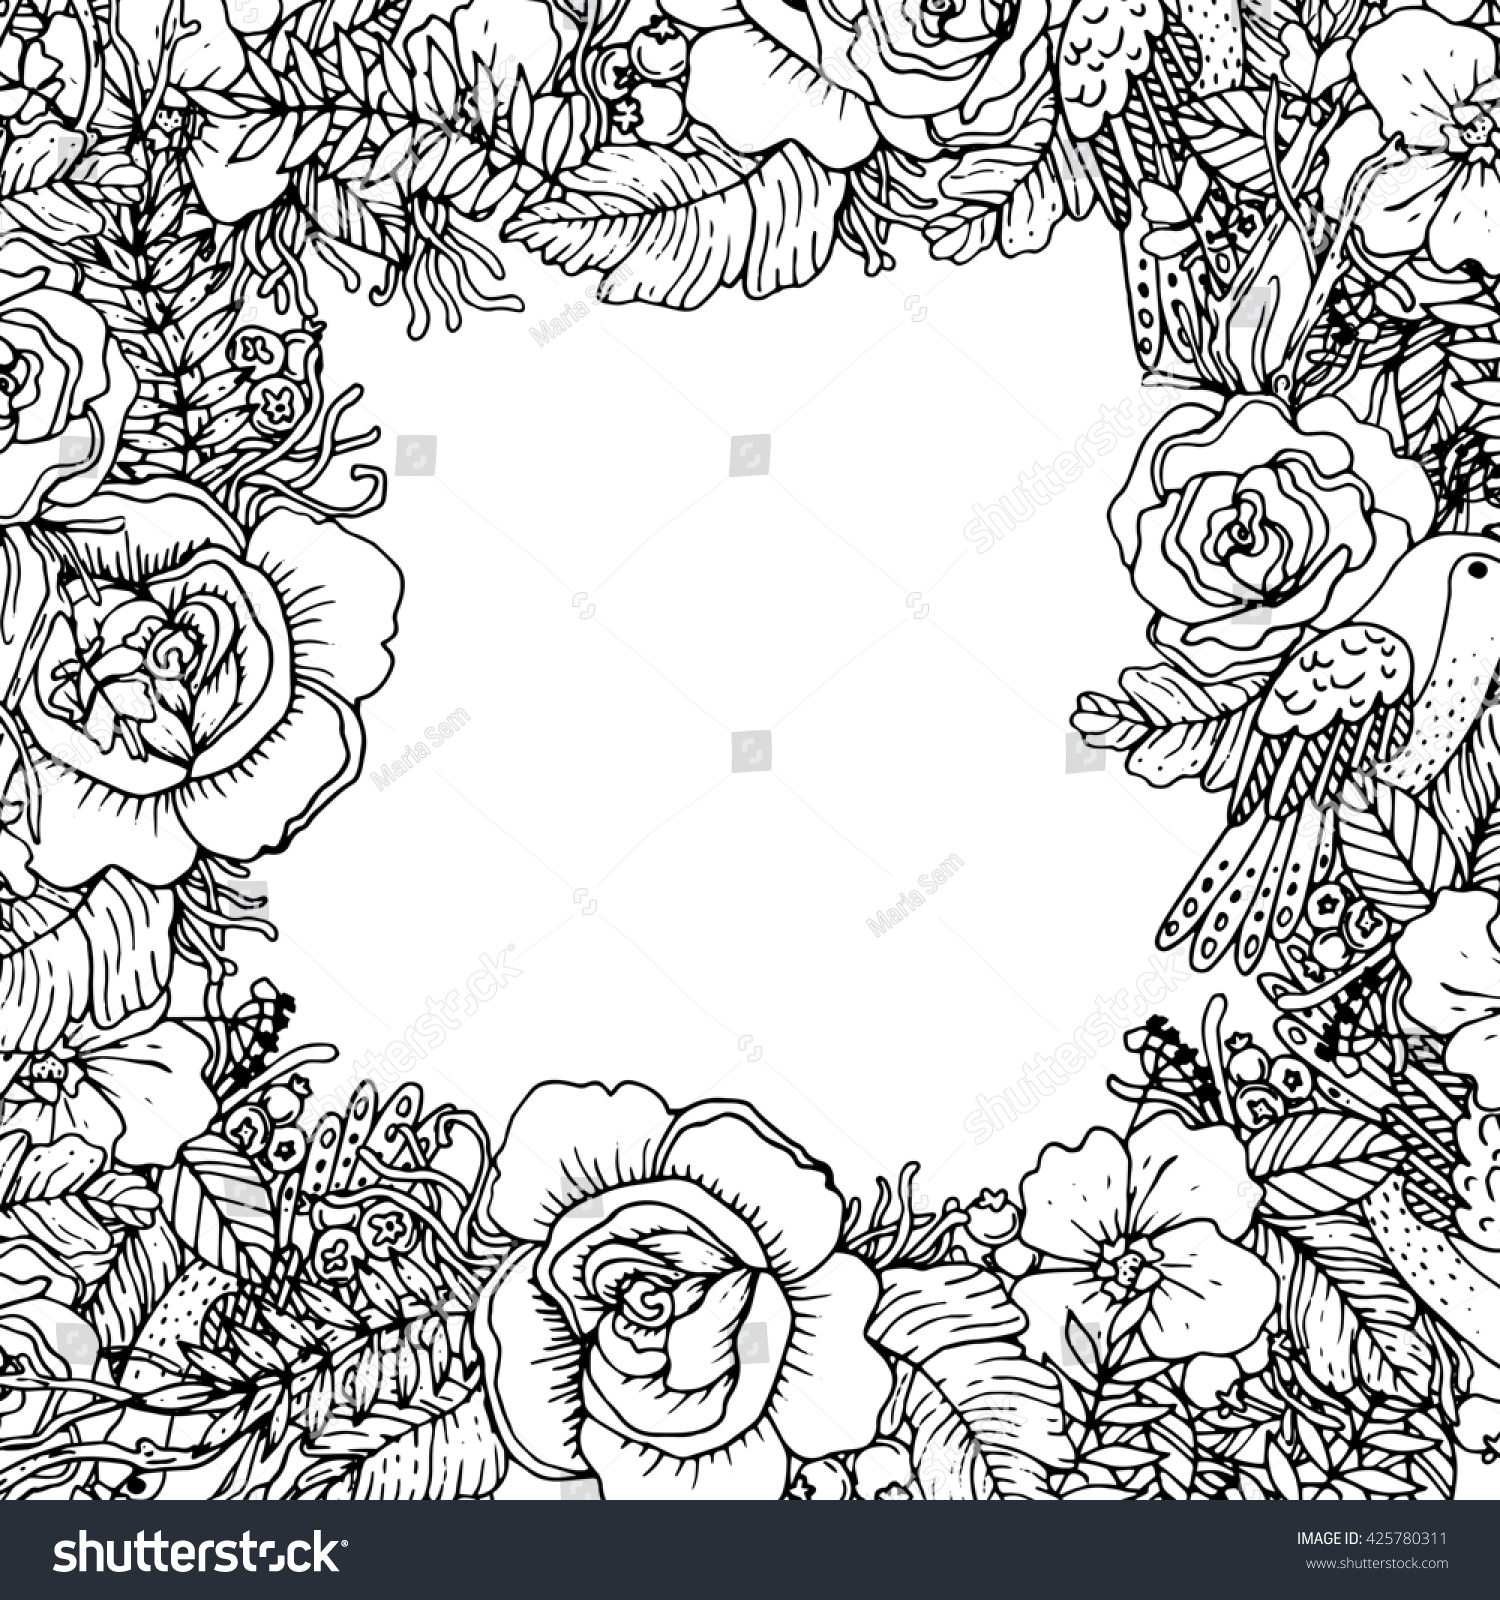 Botanical art coloring book - Beautiful Botanical Frame With Bird And Flowers Perfect For Invitations Cards Posters Or